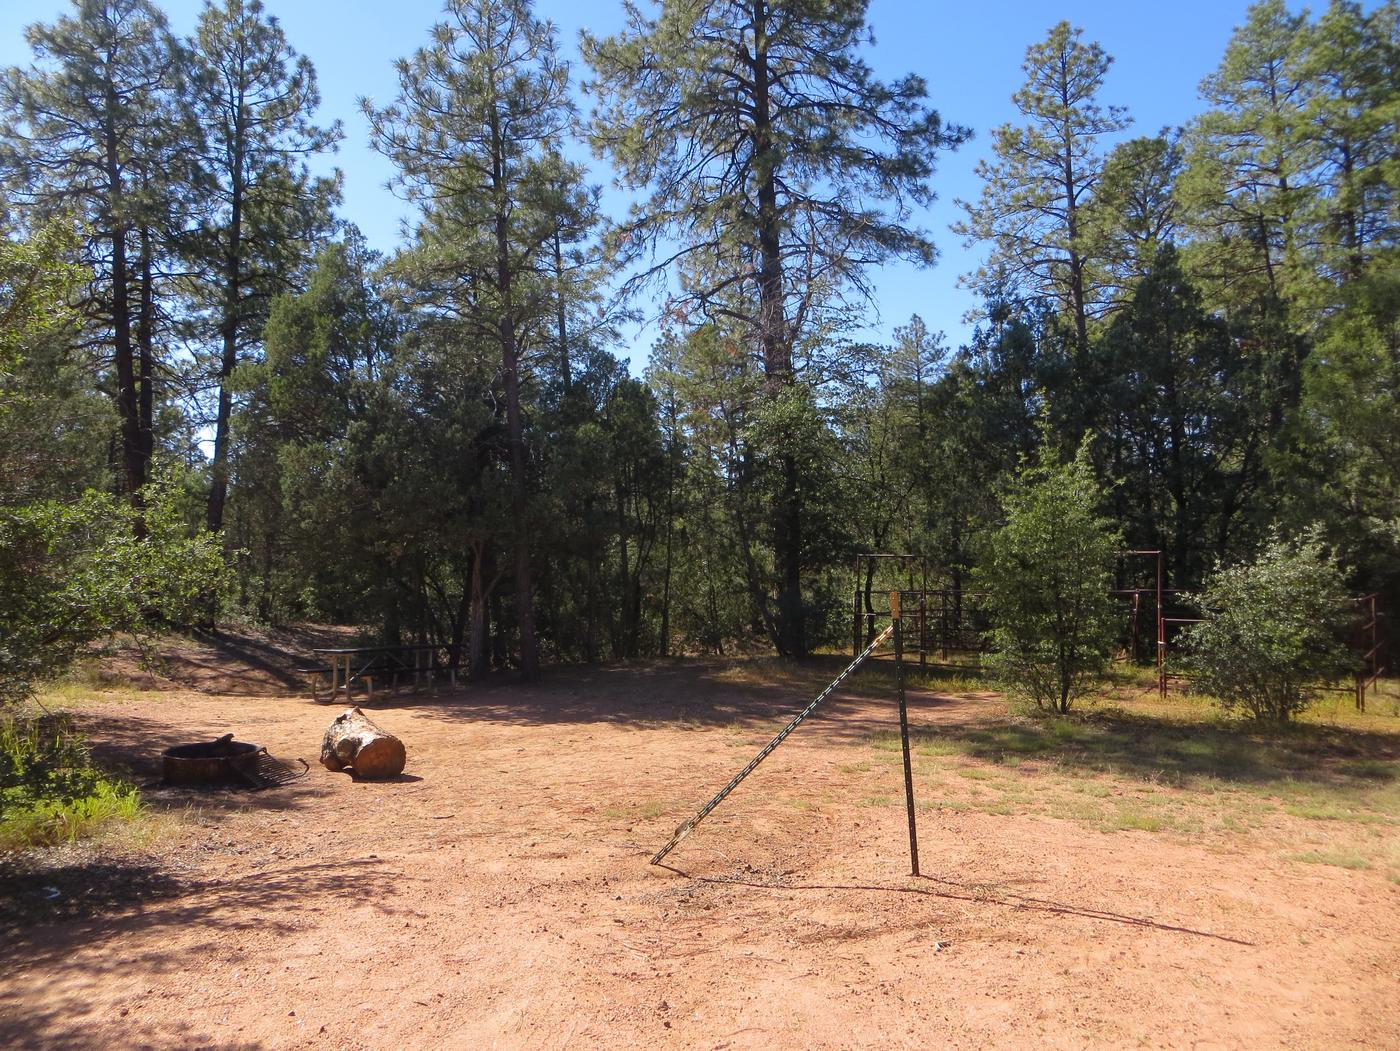 Houston Mesa, Horse Camp site #30 featuring entrance and parking, picnic area and horse corral.